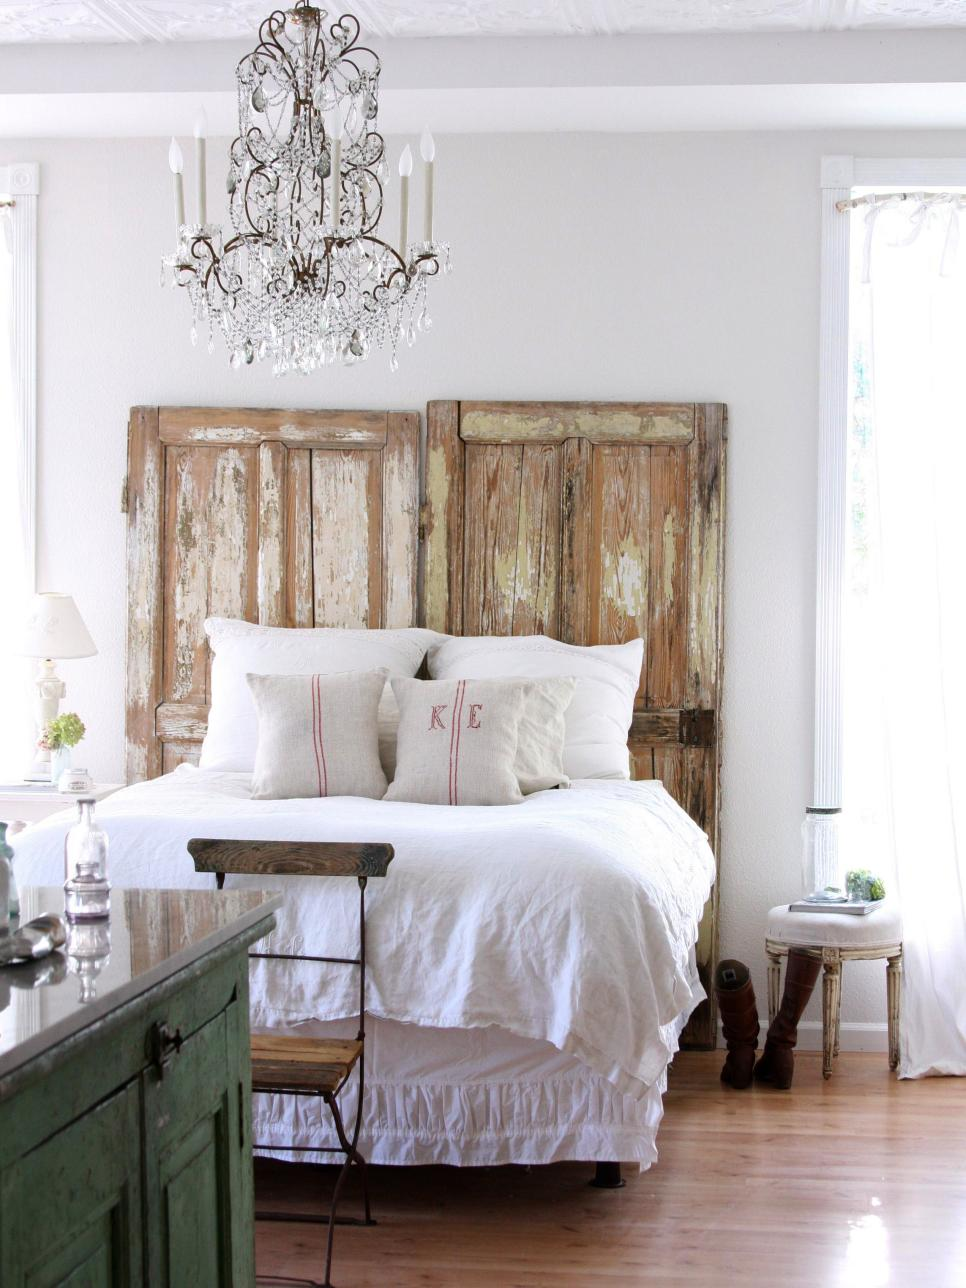 Green Ladder Headboard